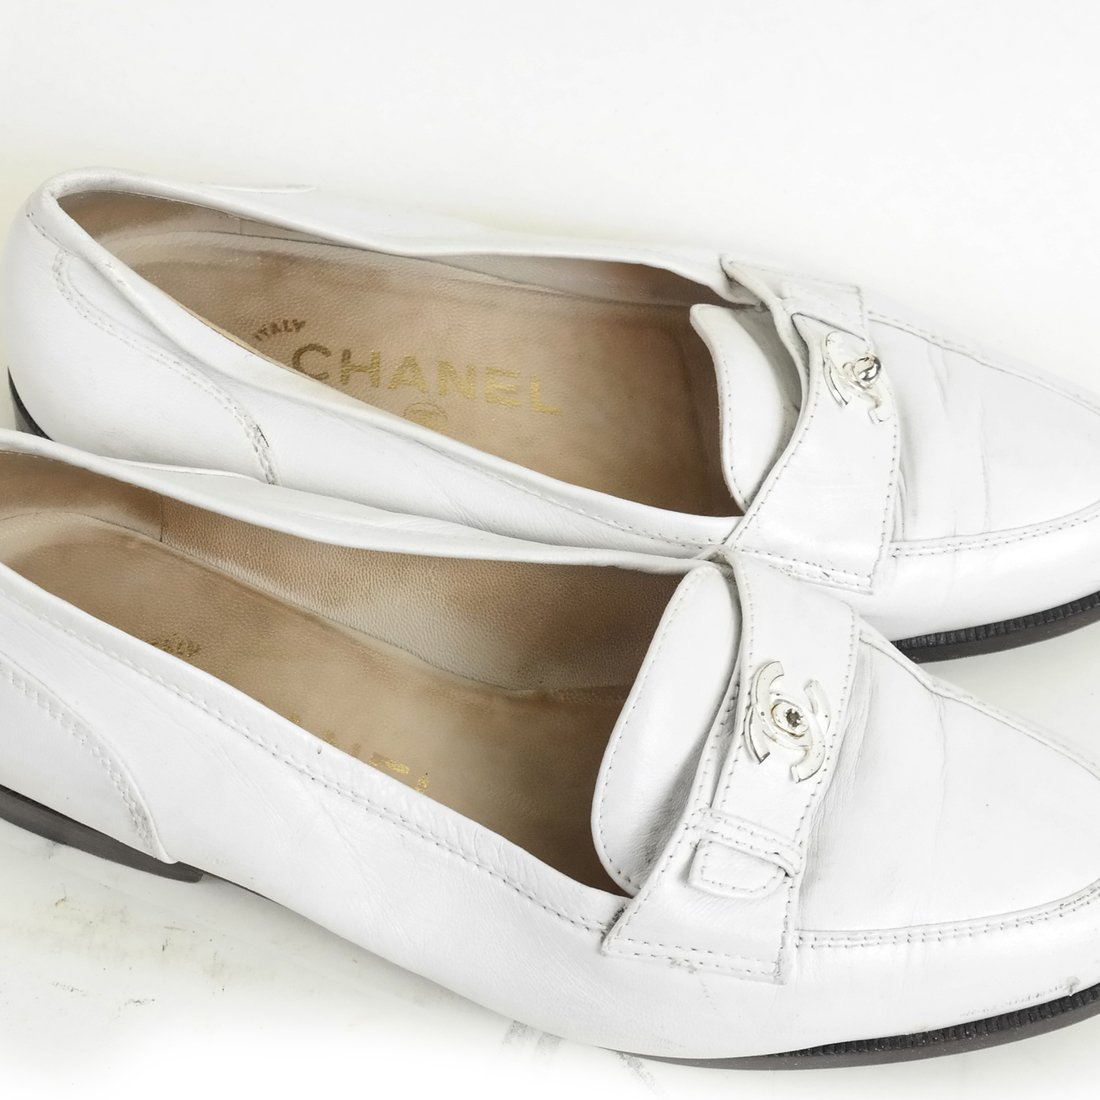 Six Pairs Chanel Shoes - 4